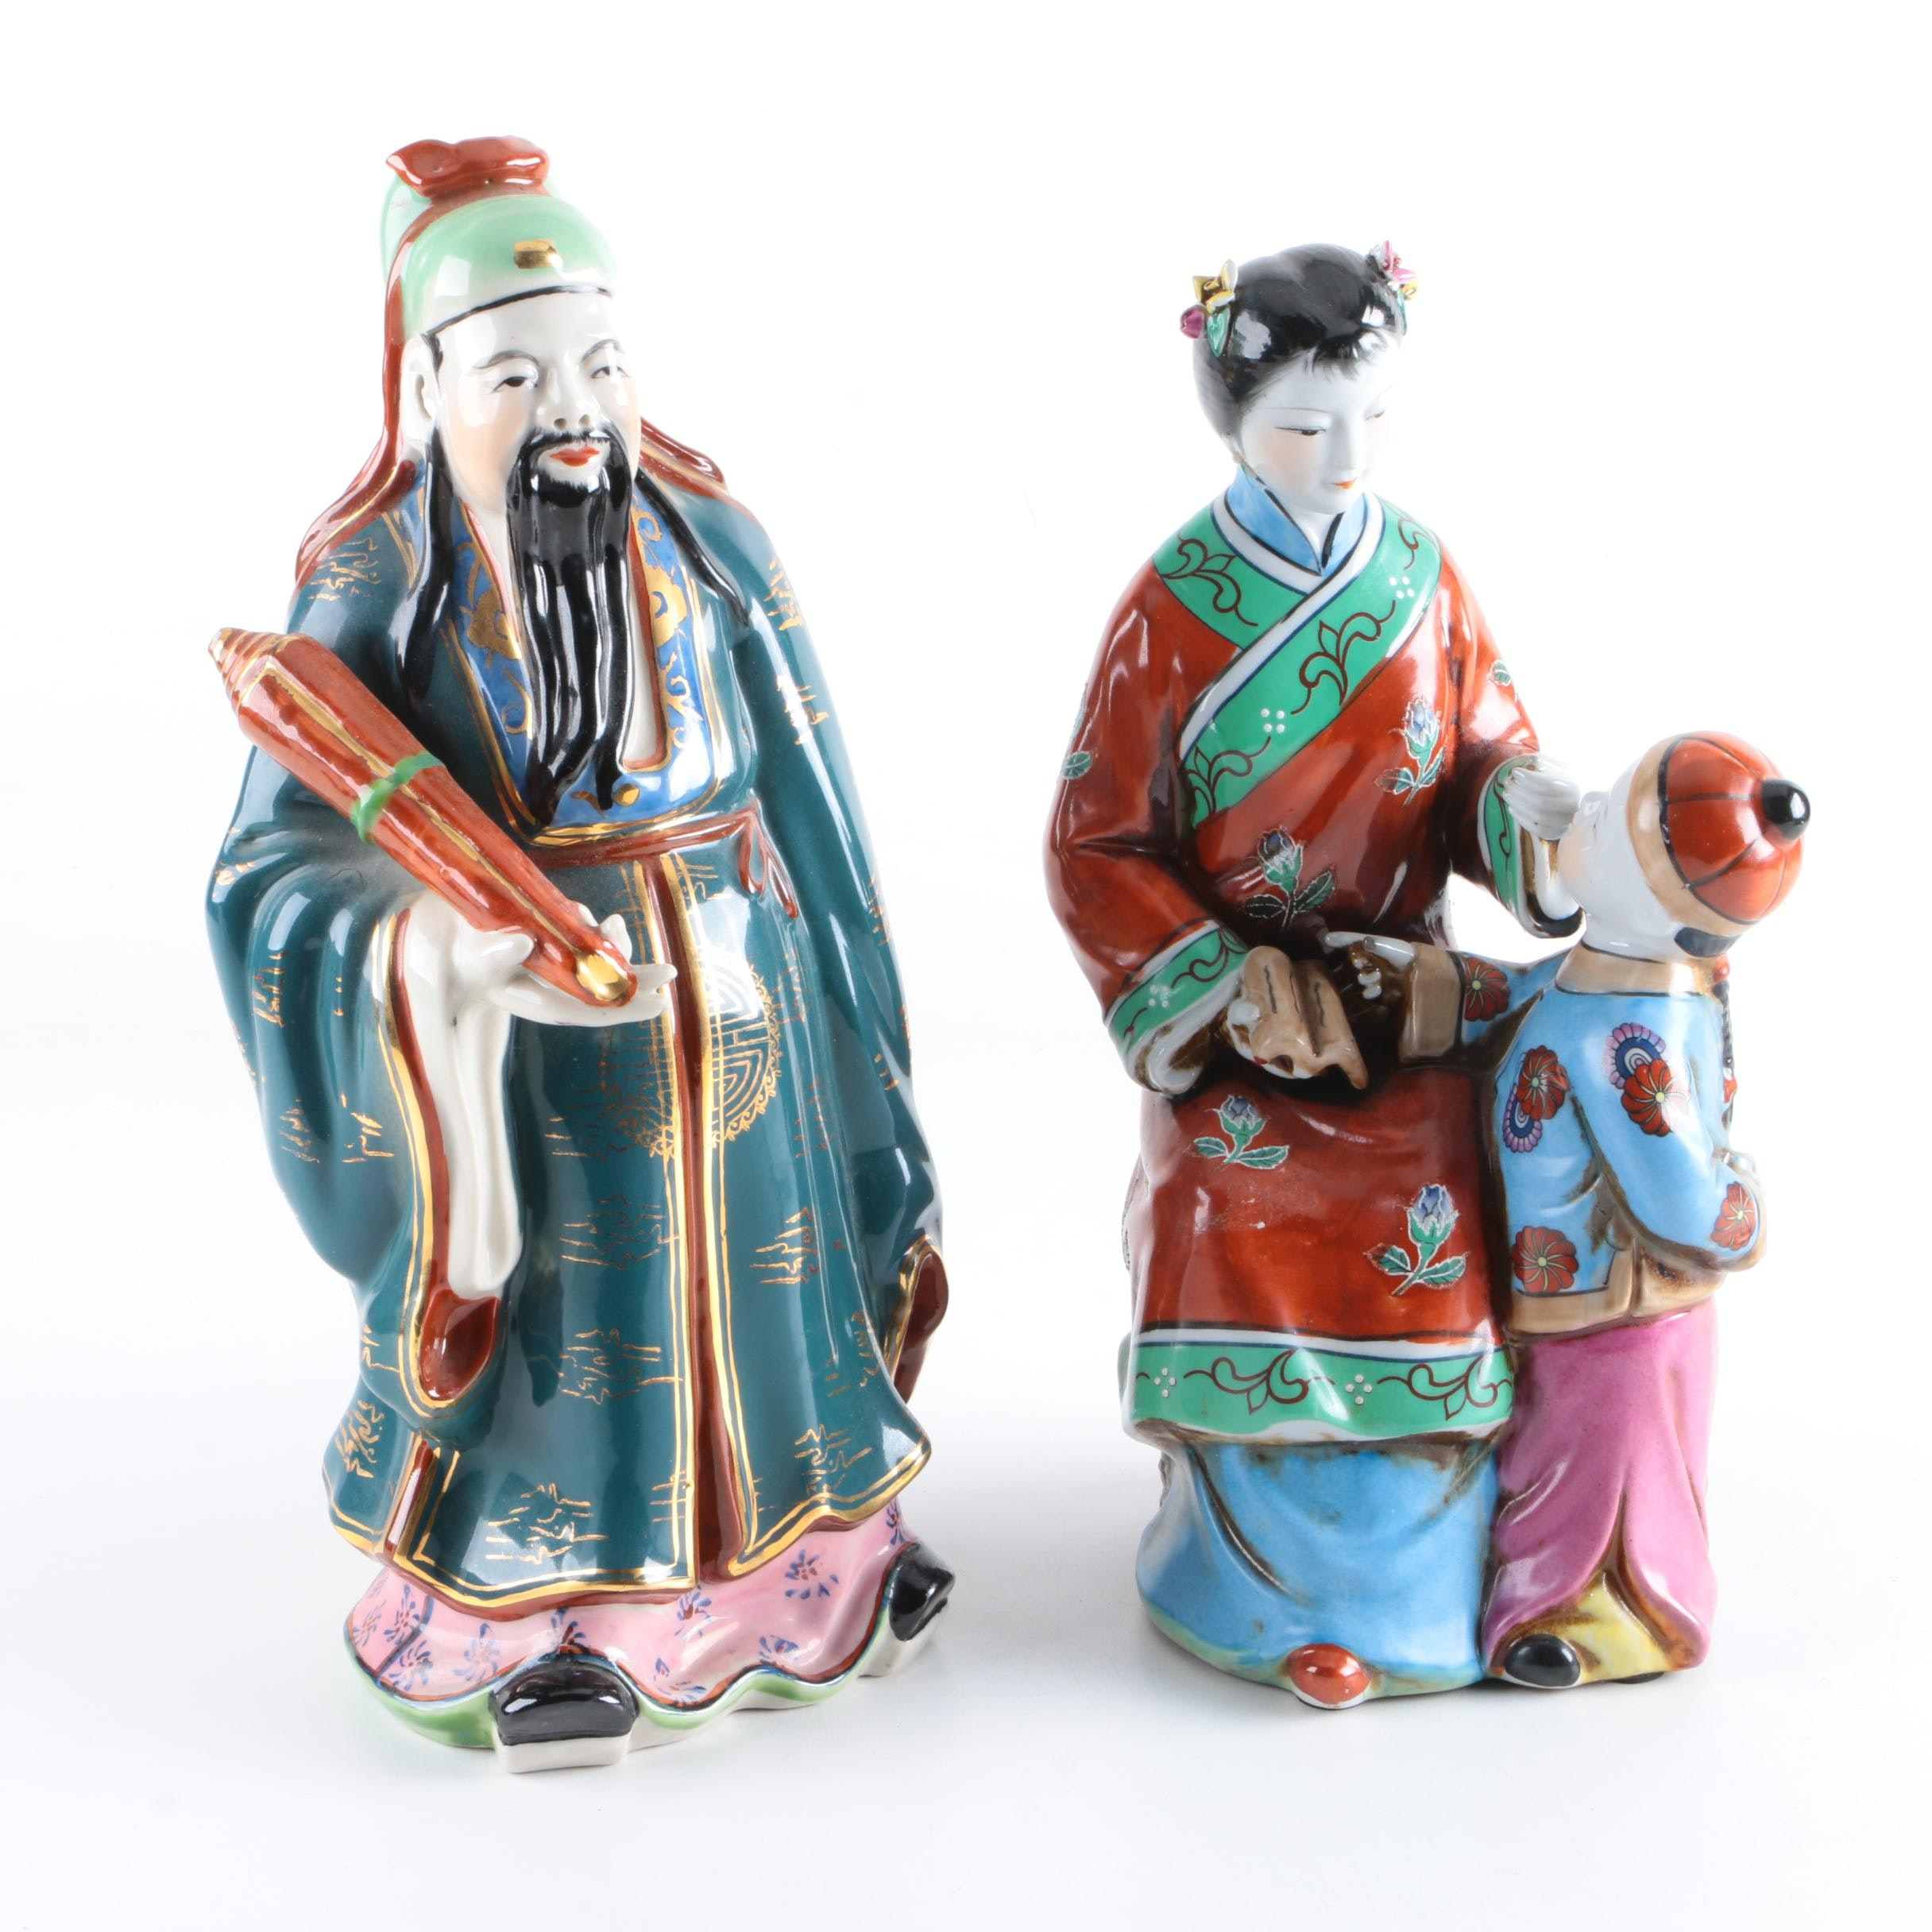 Ceramic Chinese Figurines